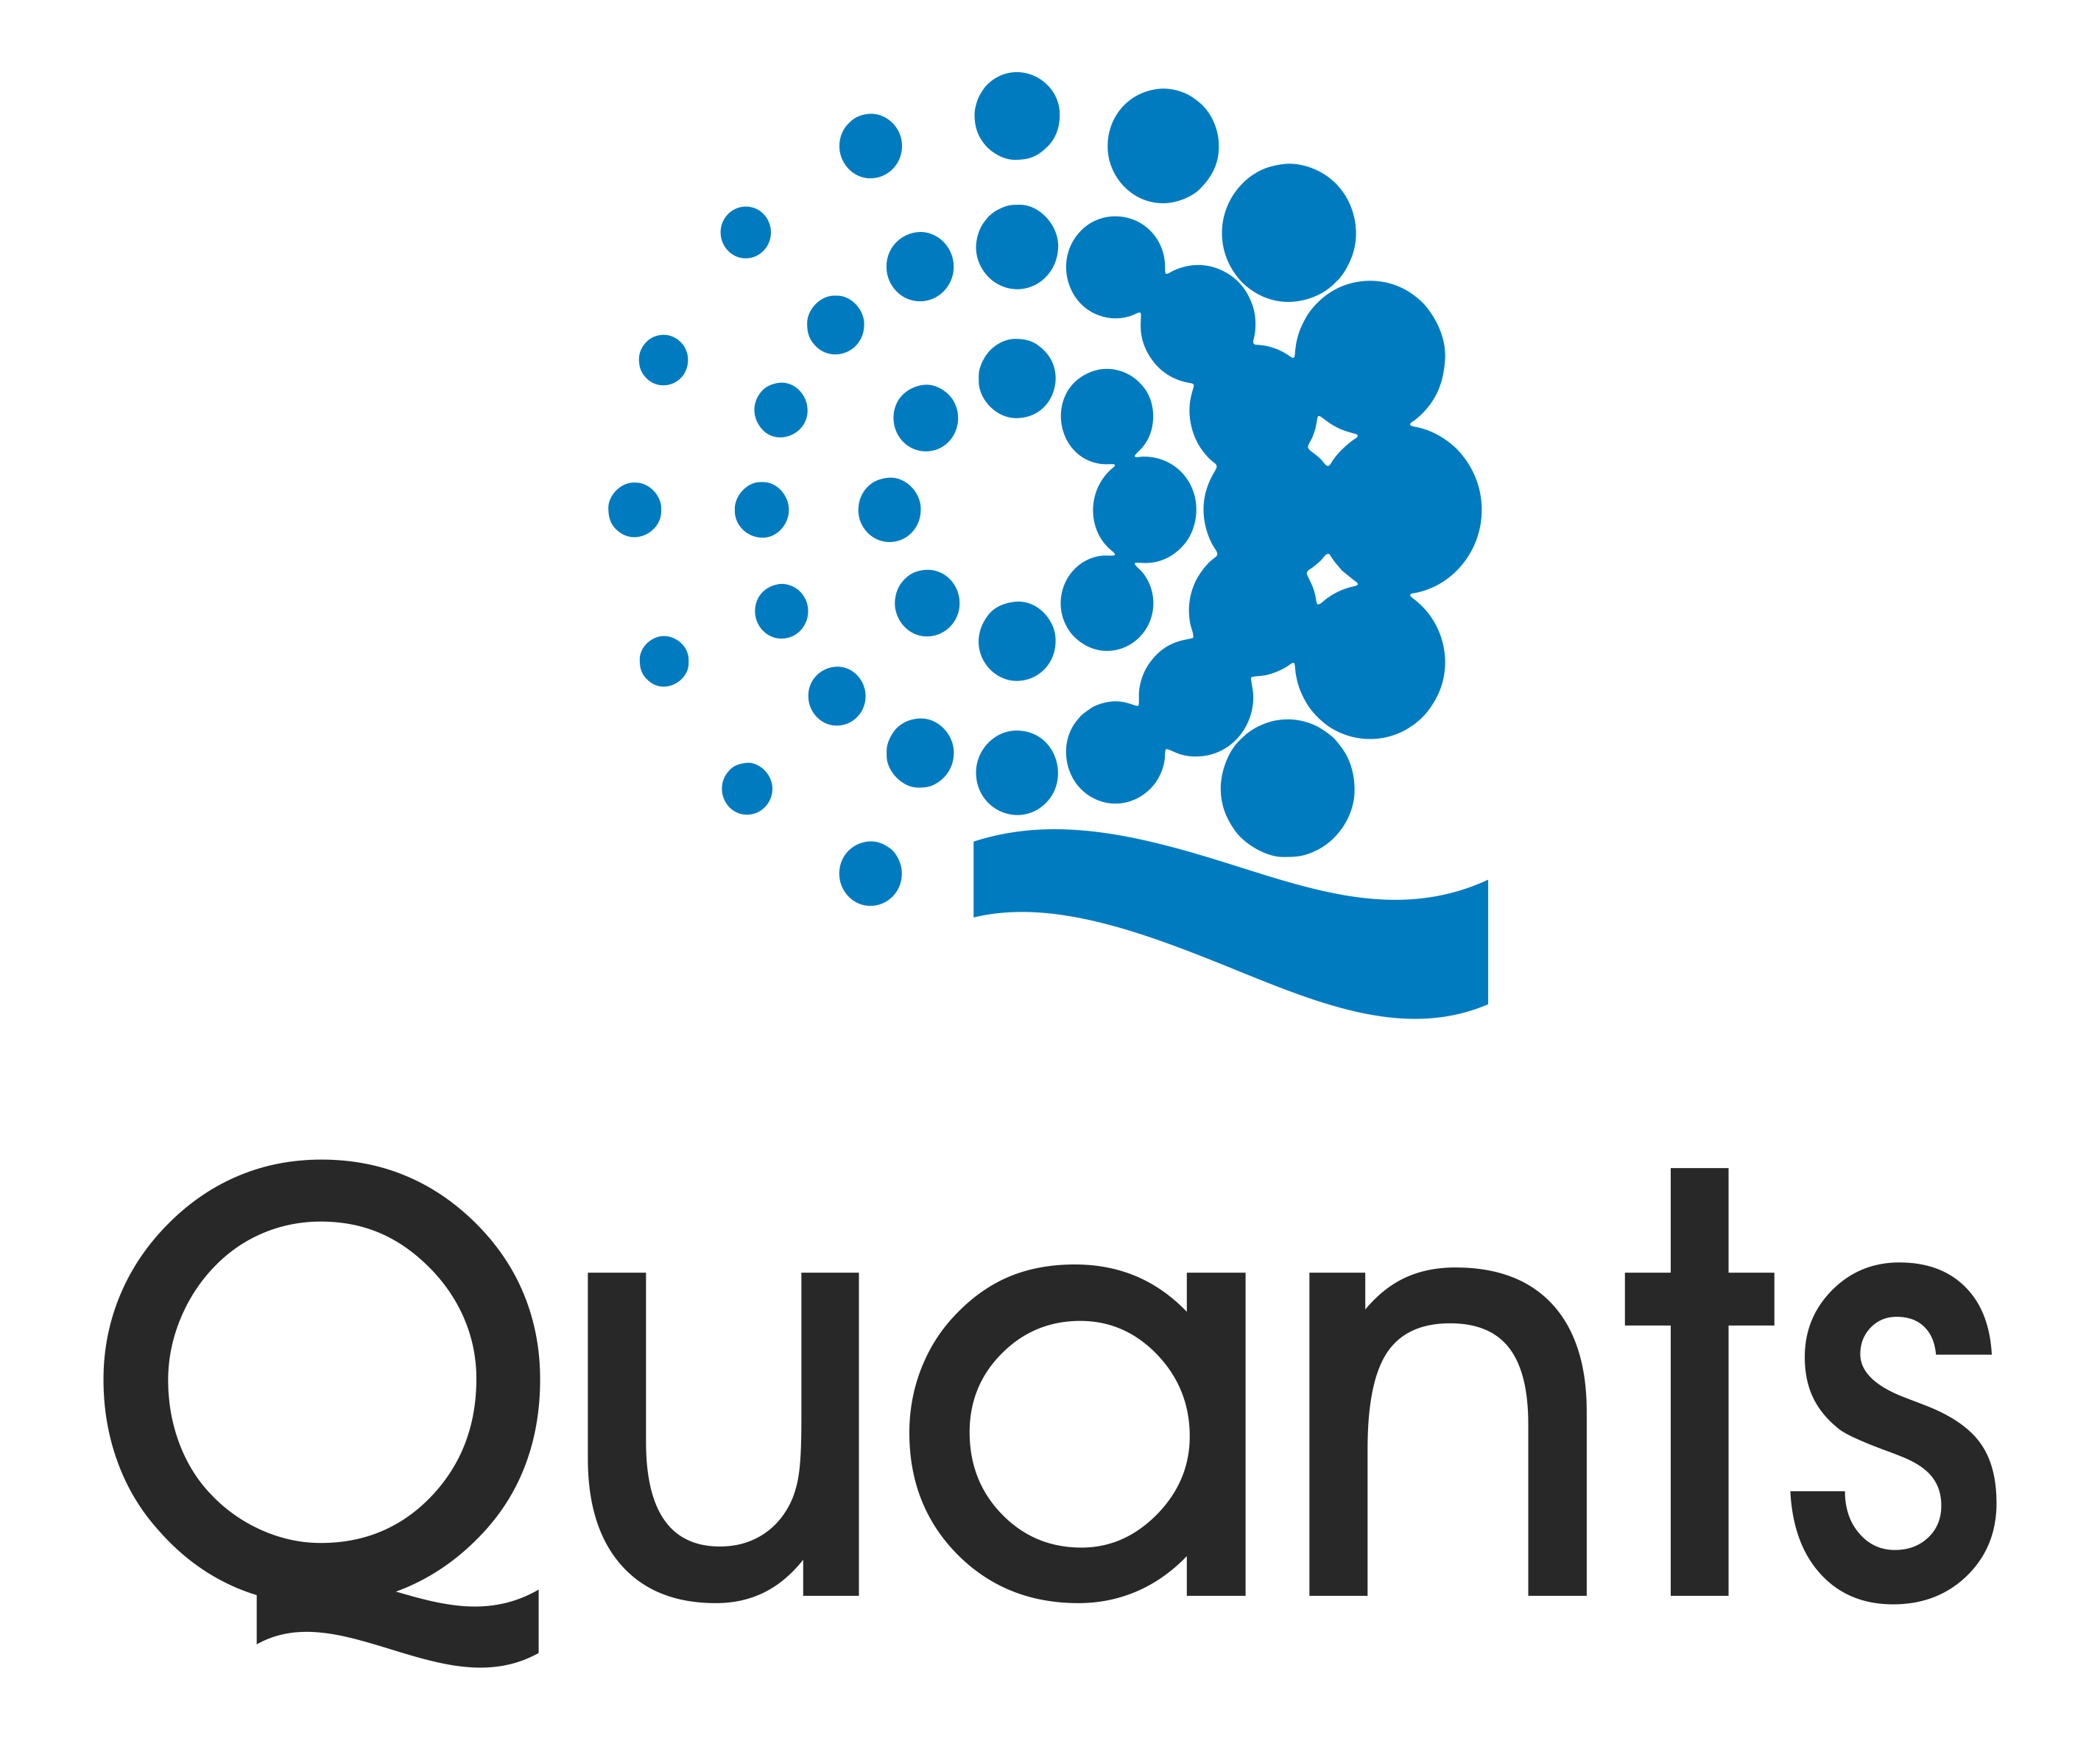 https://quants.com/